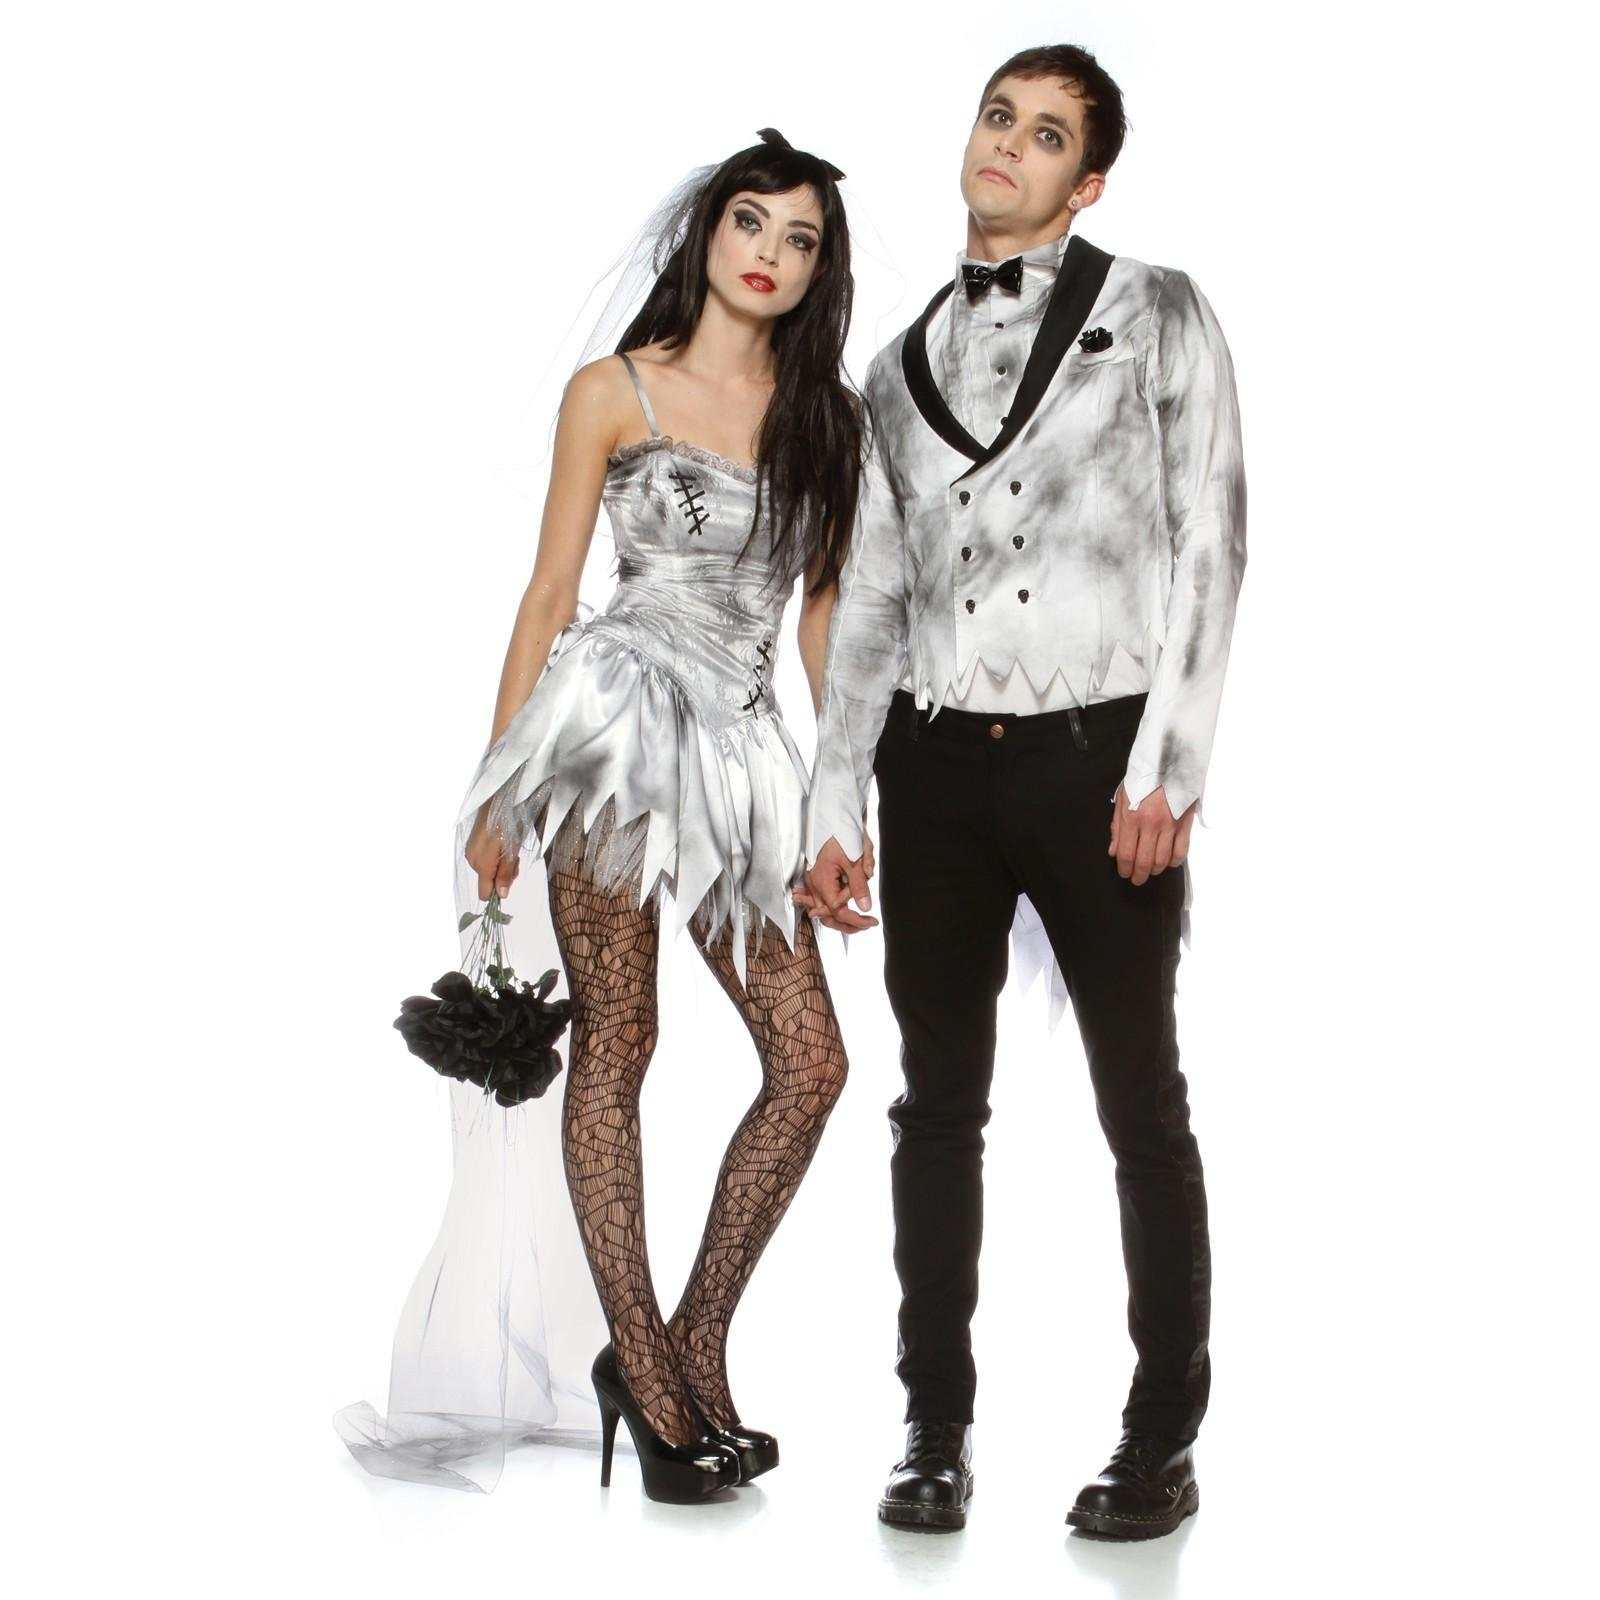 mens zombie groom costume | costumes and halloween costumes